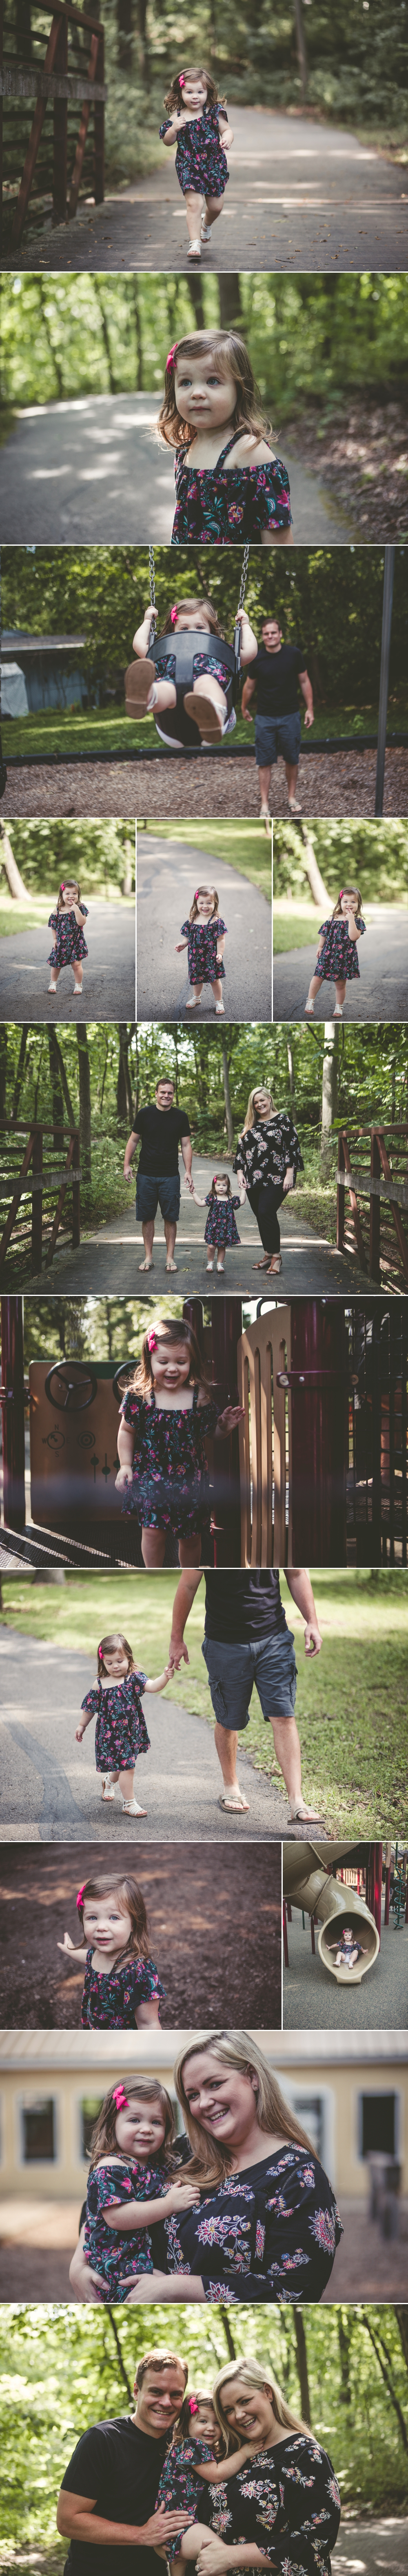 jason_domingues_photography_kansas_city_family_session_antioch_park.JPG